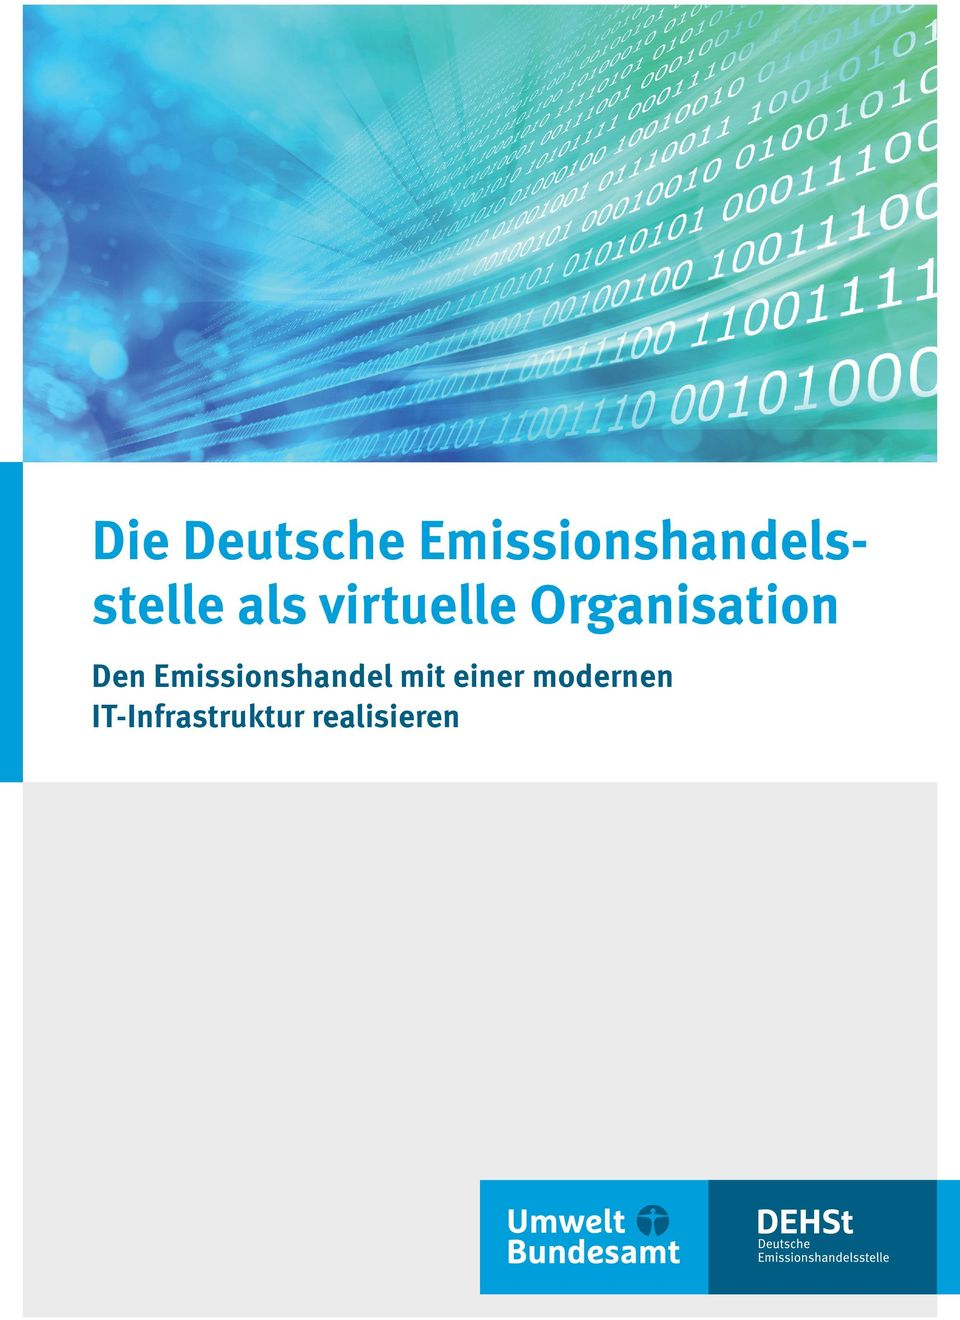 virtuelle Organisation Den